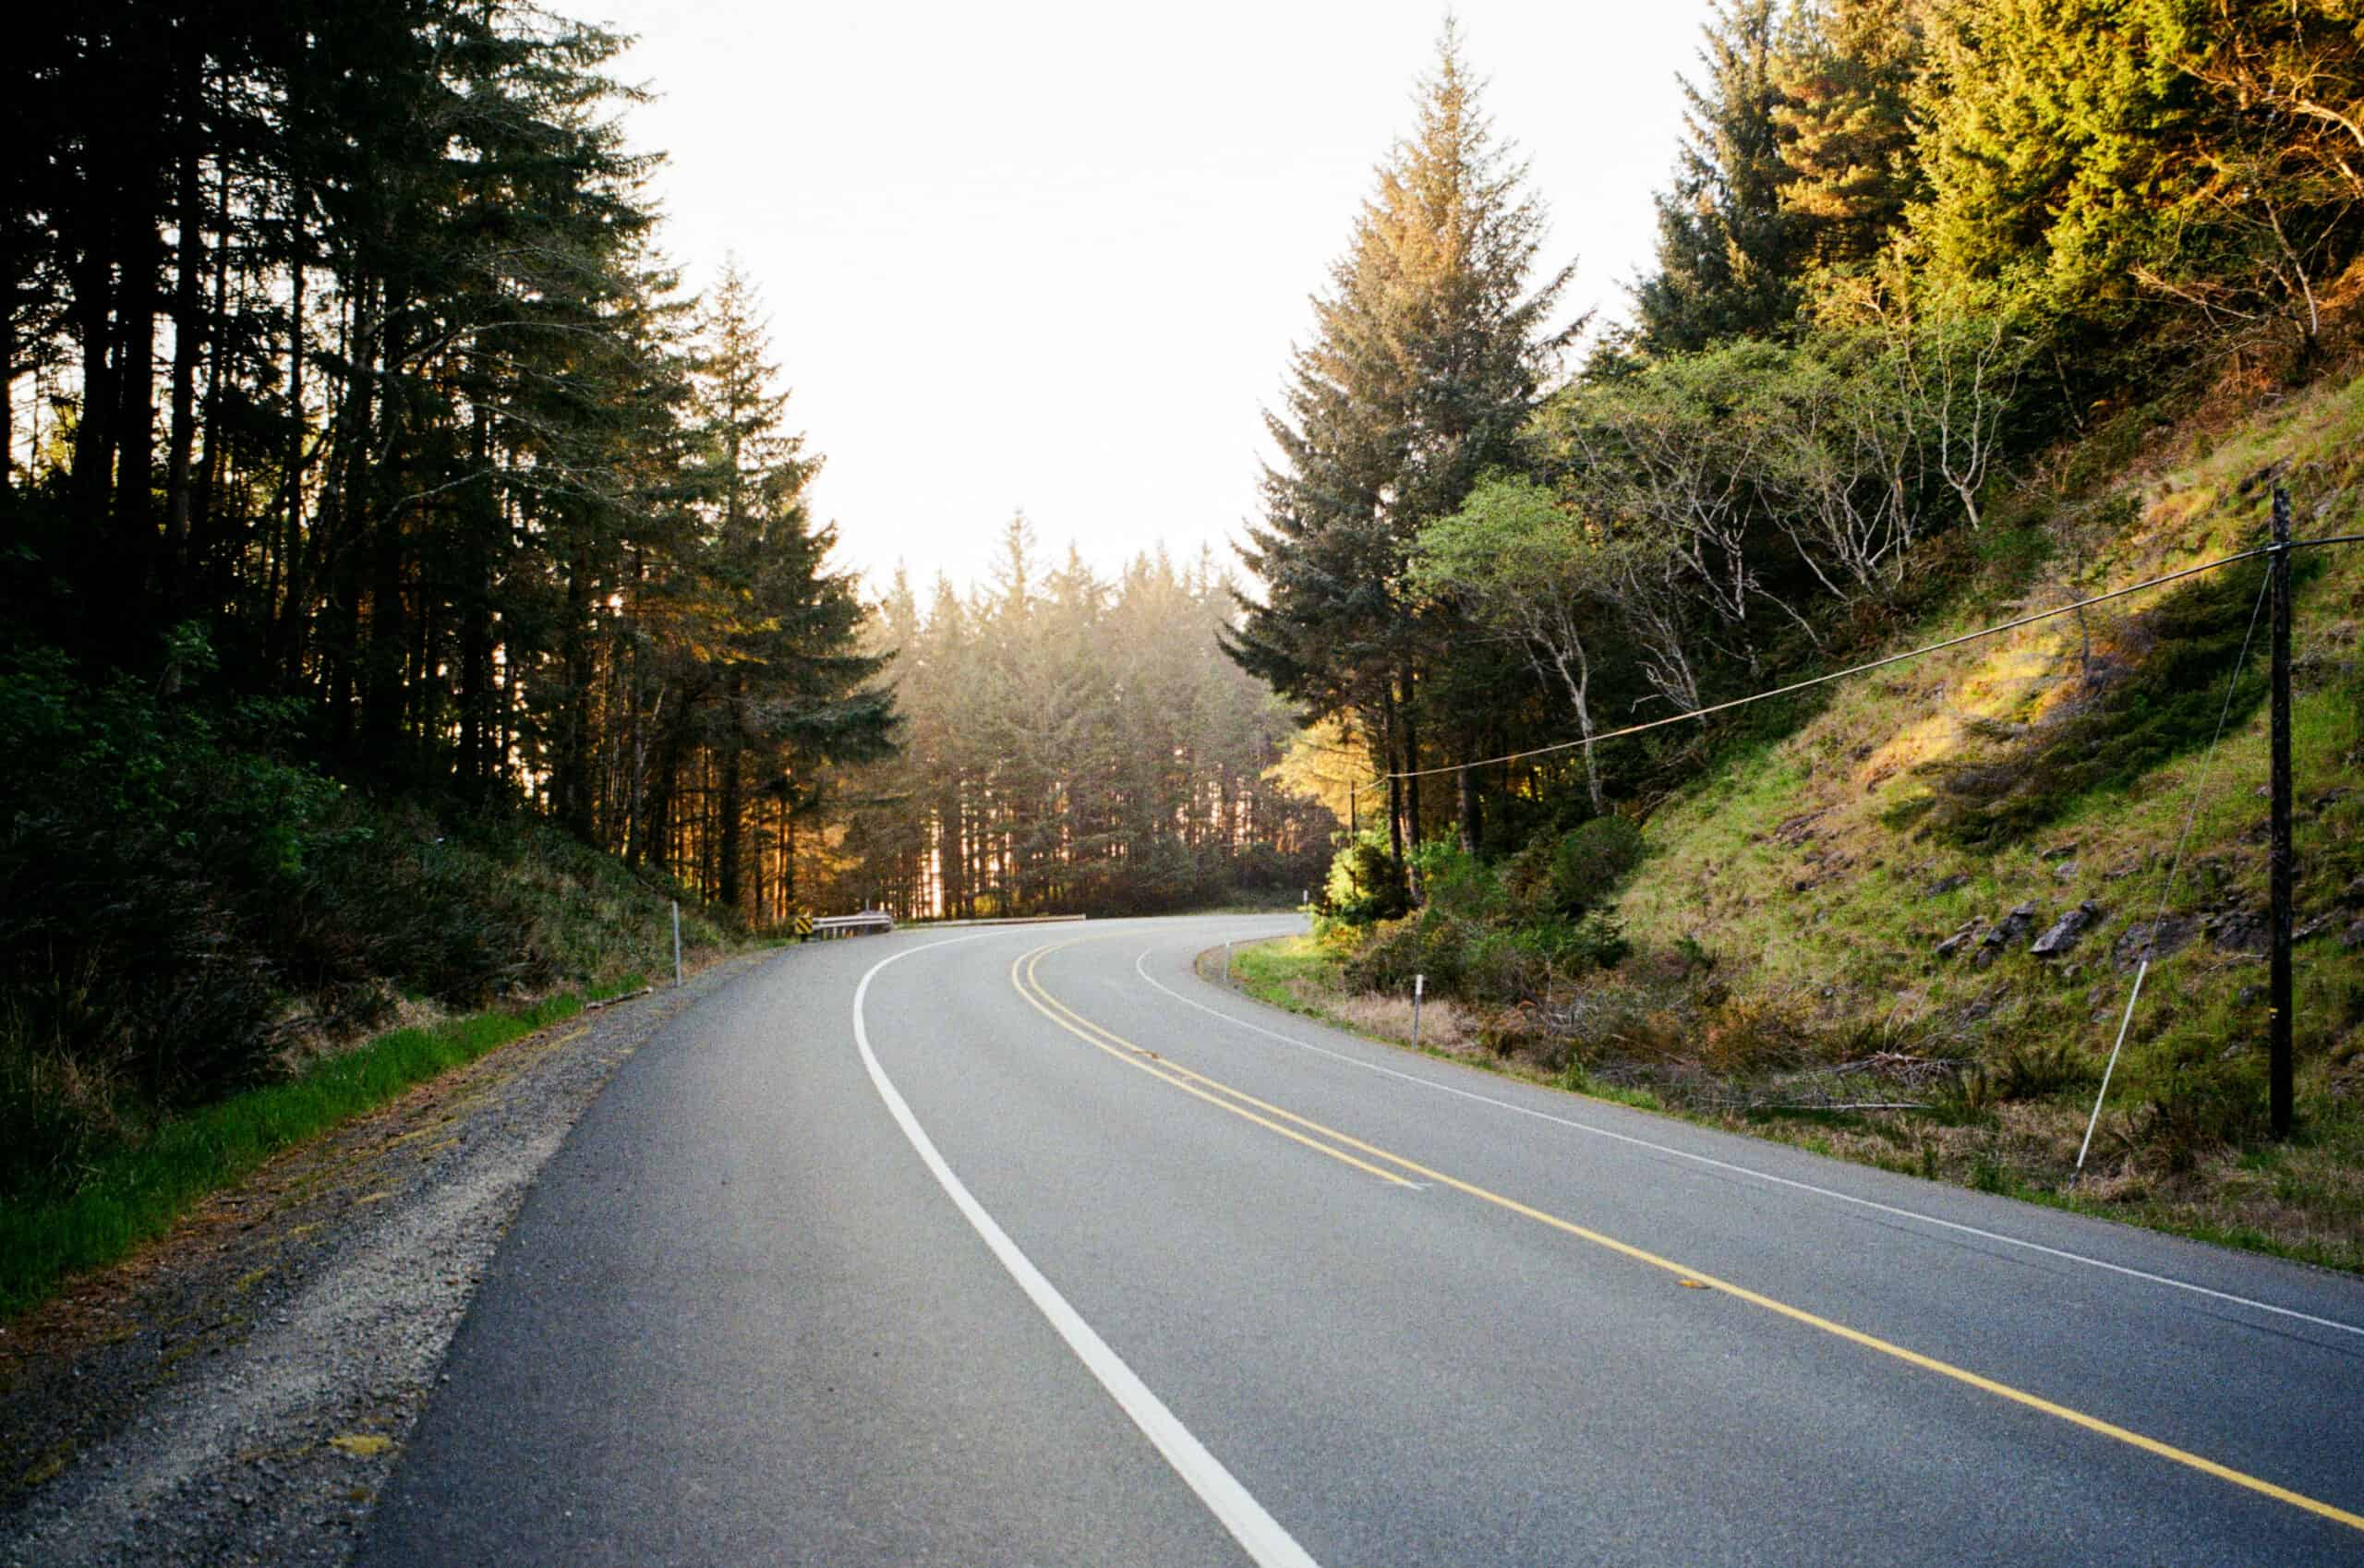 The Complete Oregon Road Trip Itinerary (+ 4 Itineraries from 5 Days to 2 Weeks!)